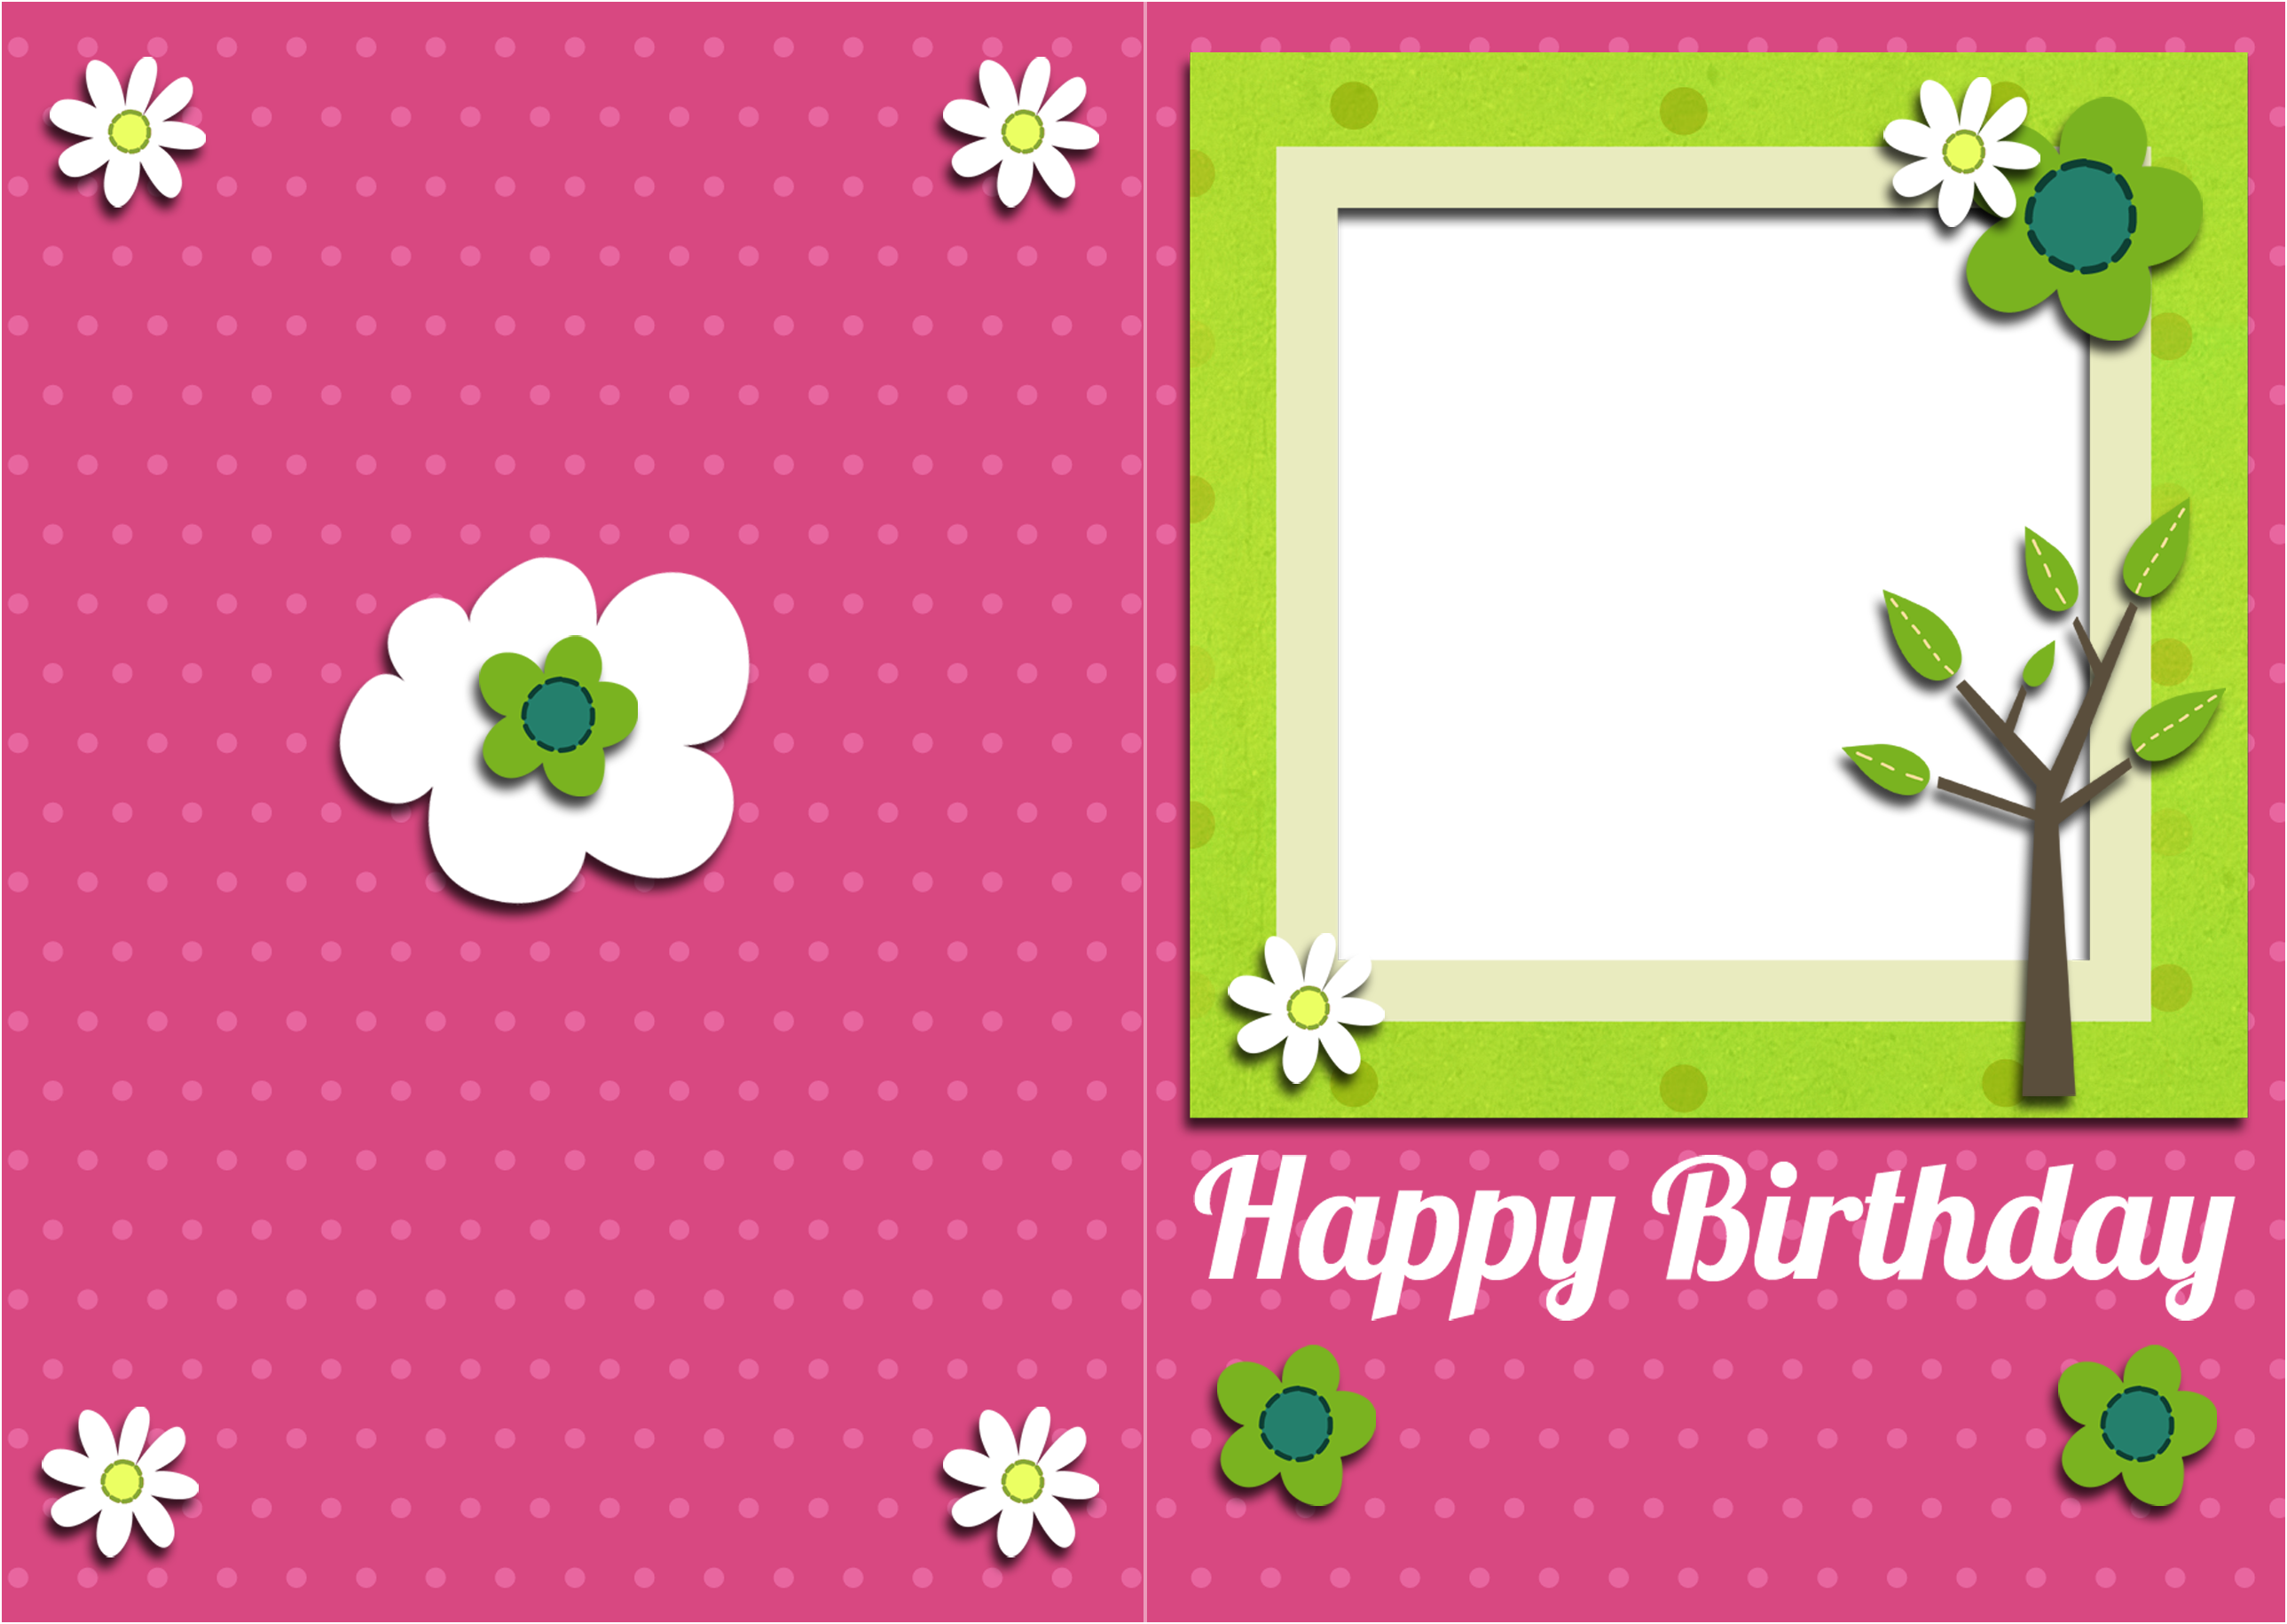 56eae09415752f66132ed5f398188b01happy birthday cards